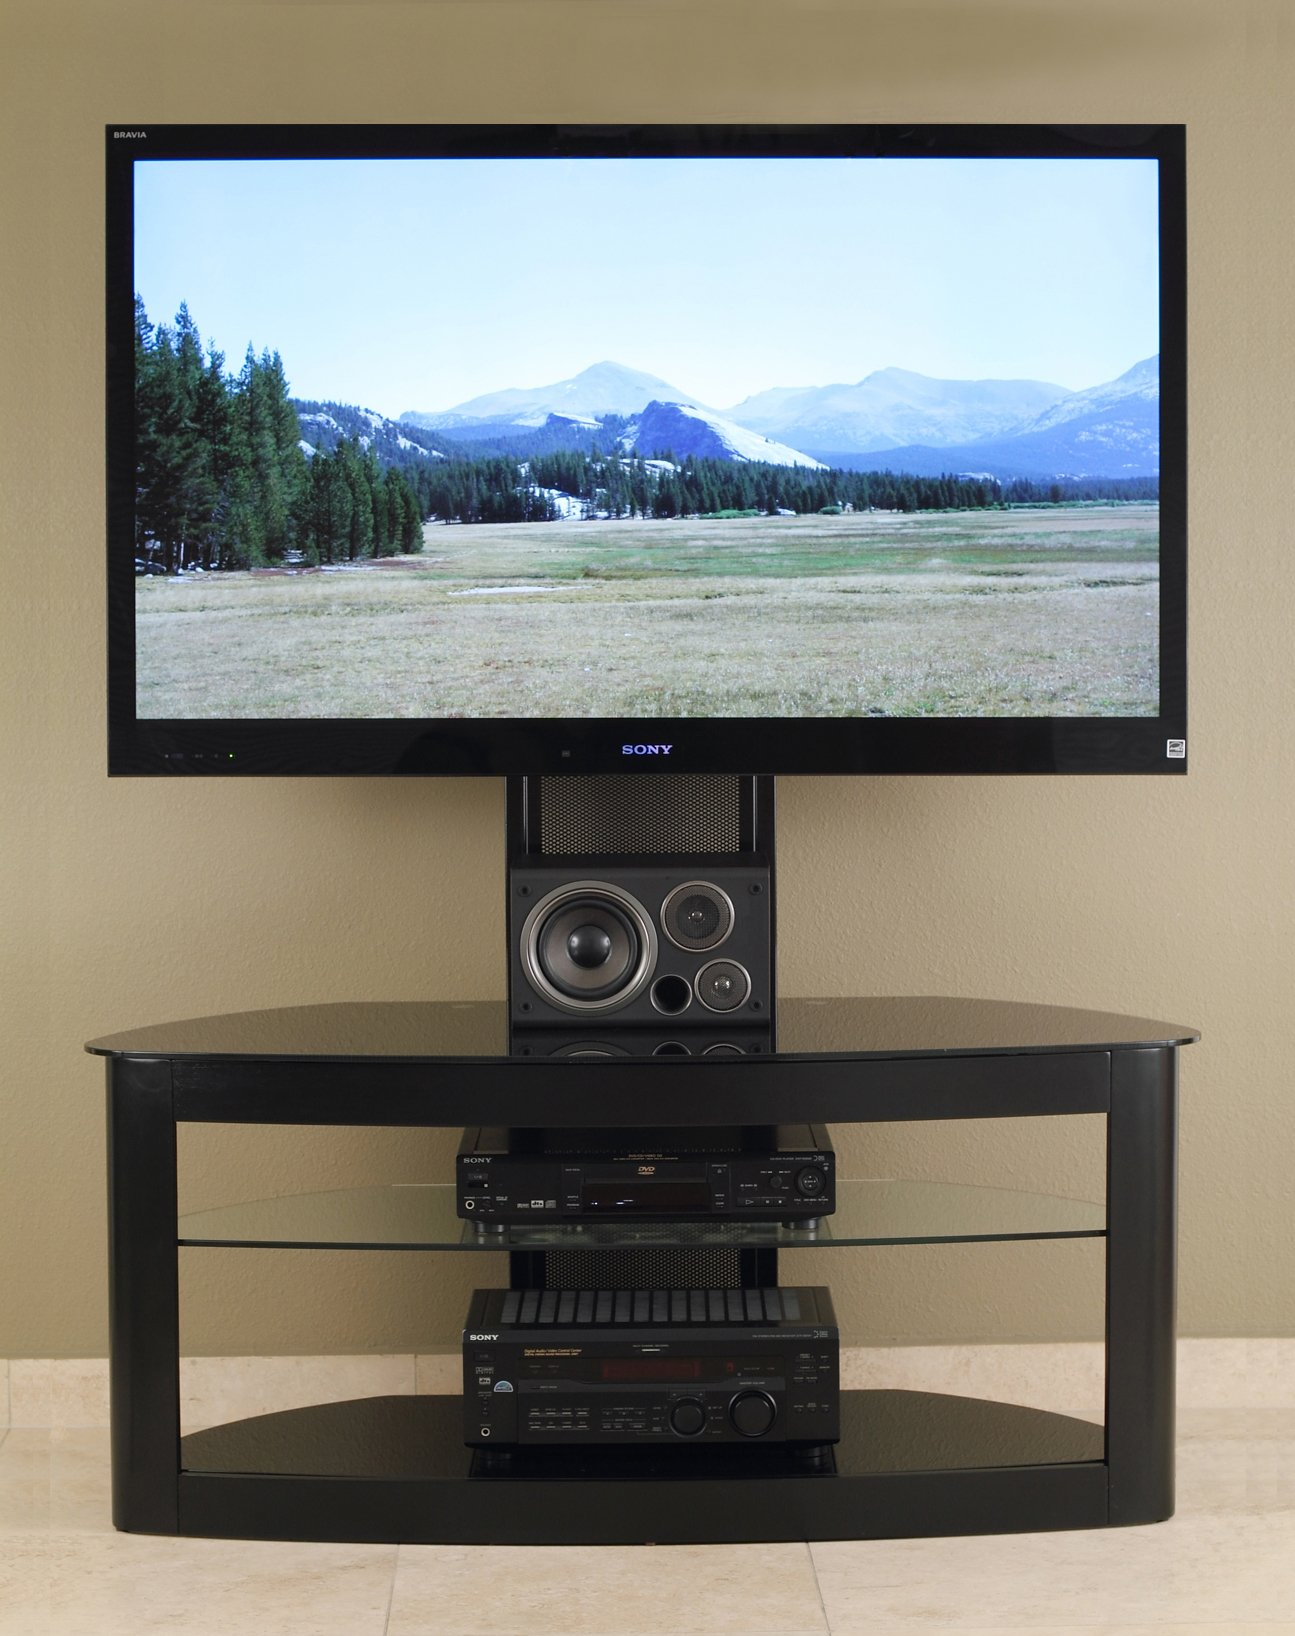 TransDeco LCD TV Stand with Universal Mounting System for 35 to 65-Inch Flat Panel TV by TransDeco (Image #2)